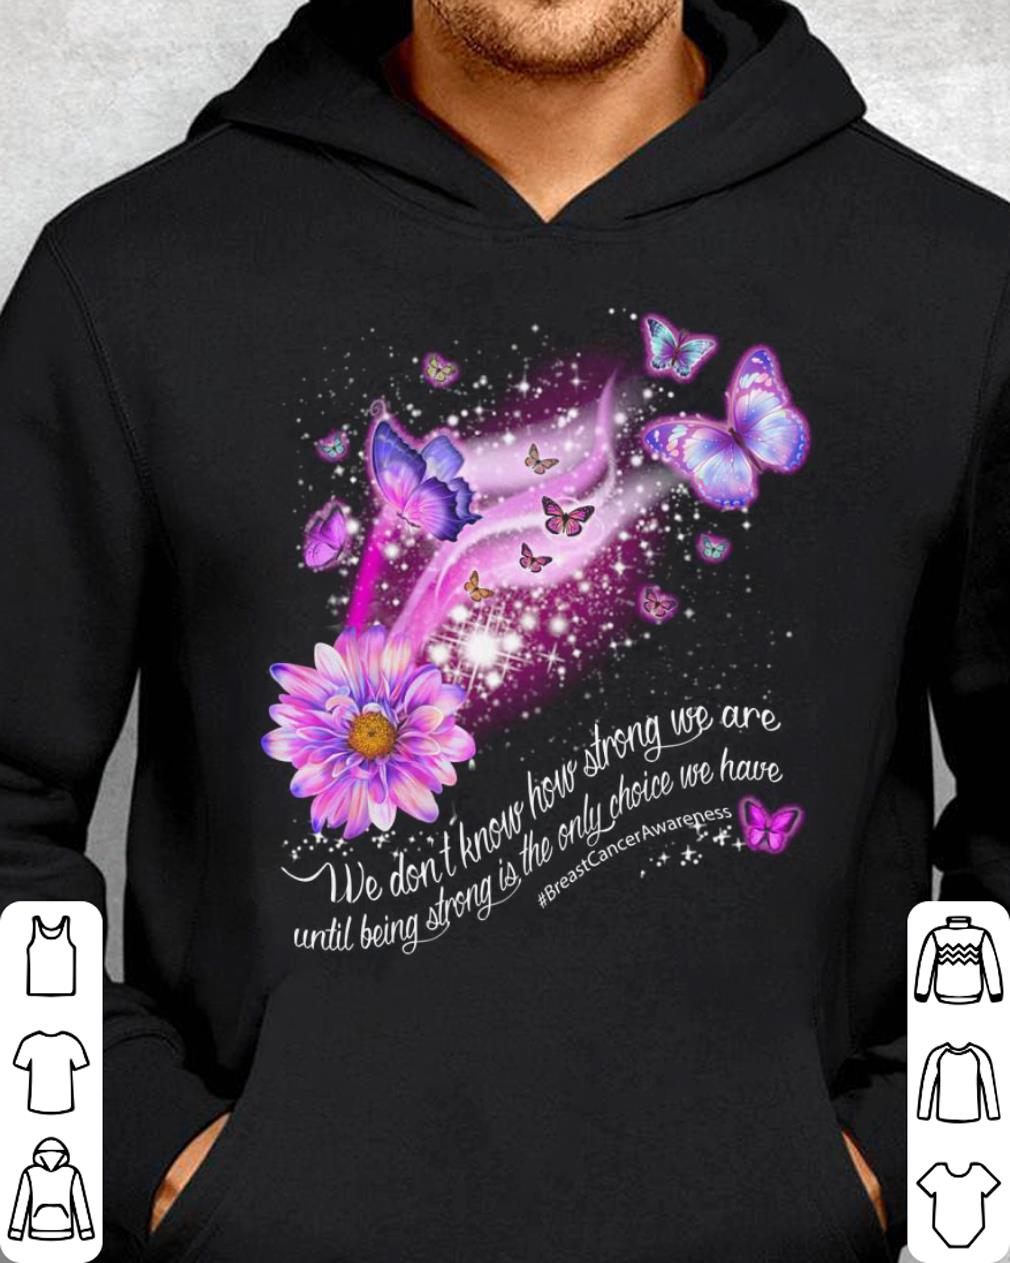 https://officialshirts.net/tee/2019/02/Butterfly-We-don-t-know-how-strong-we-are-until-being-strong-shirt_4.jpg